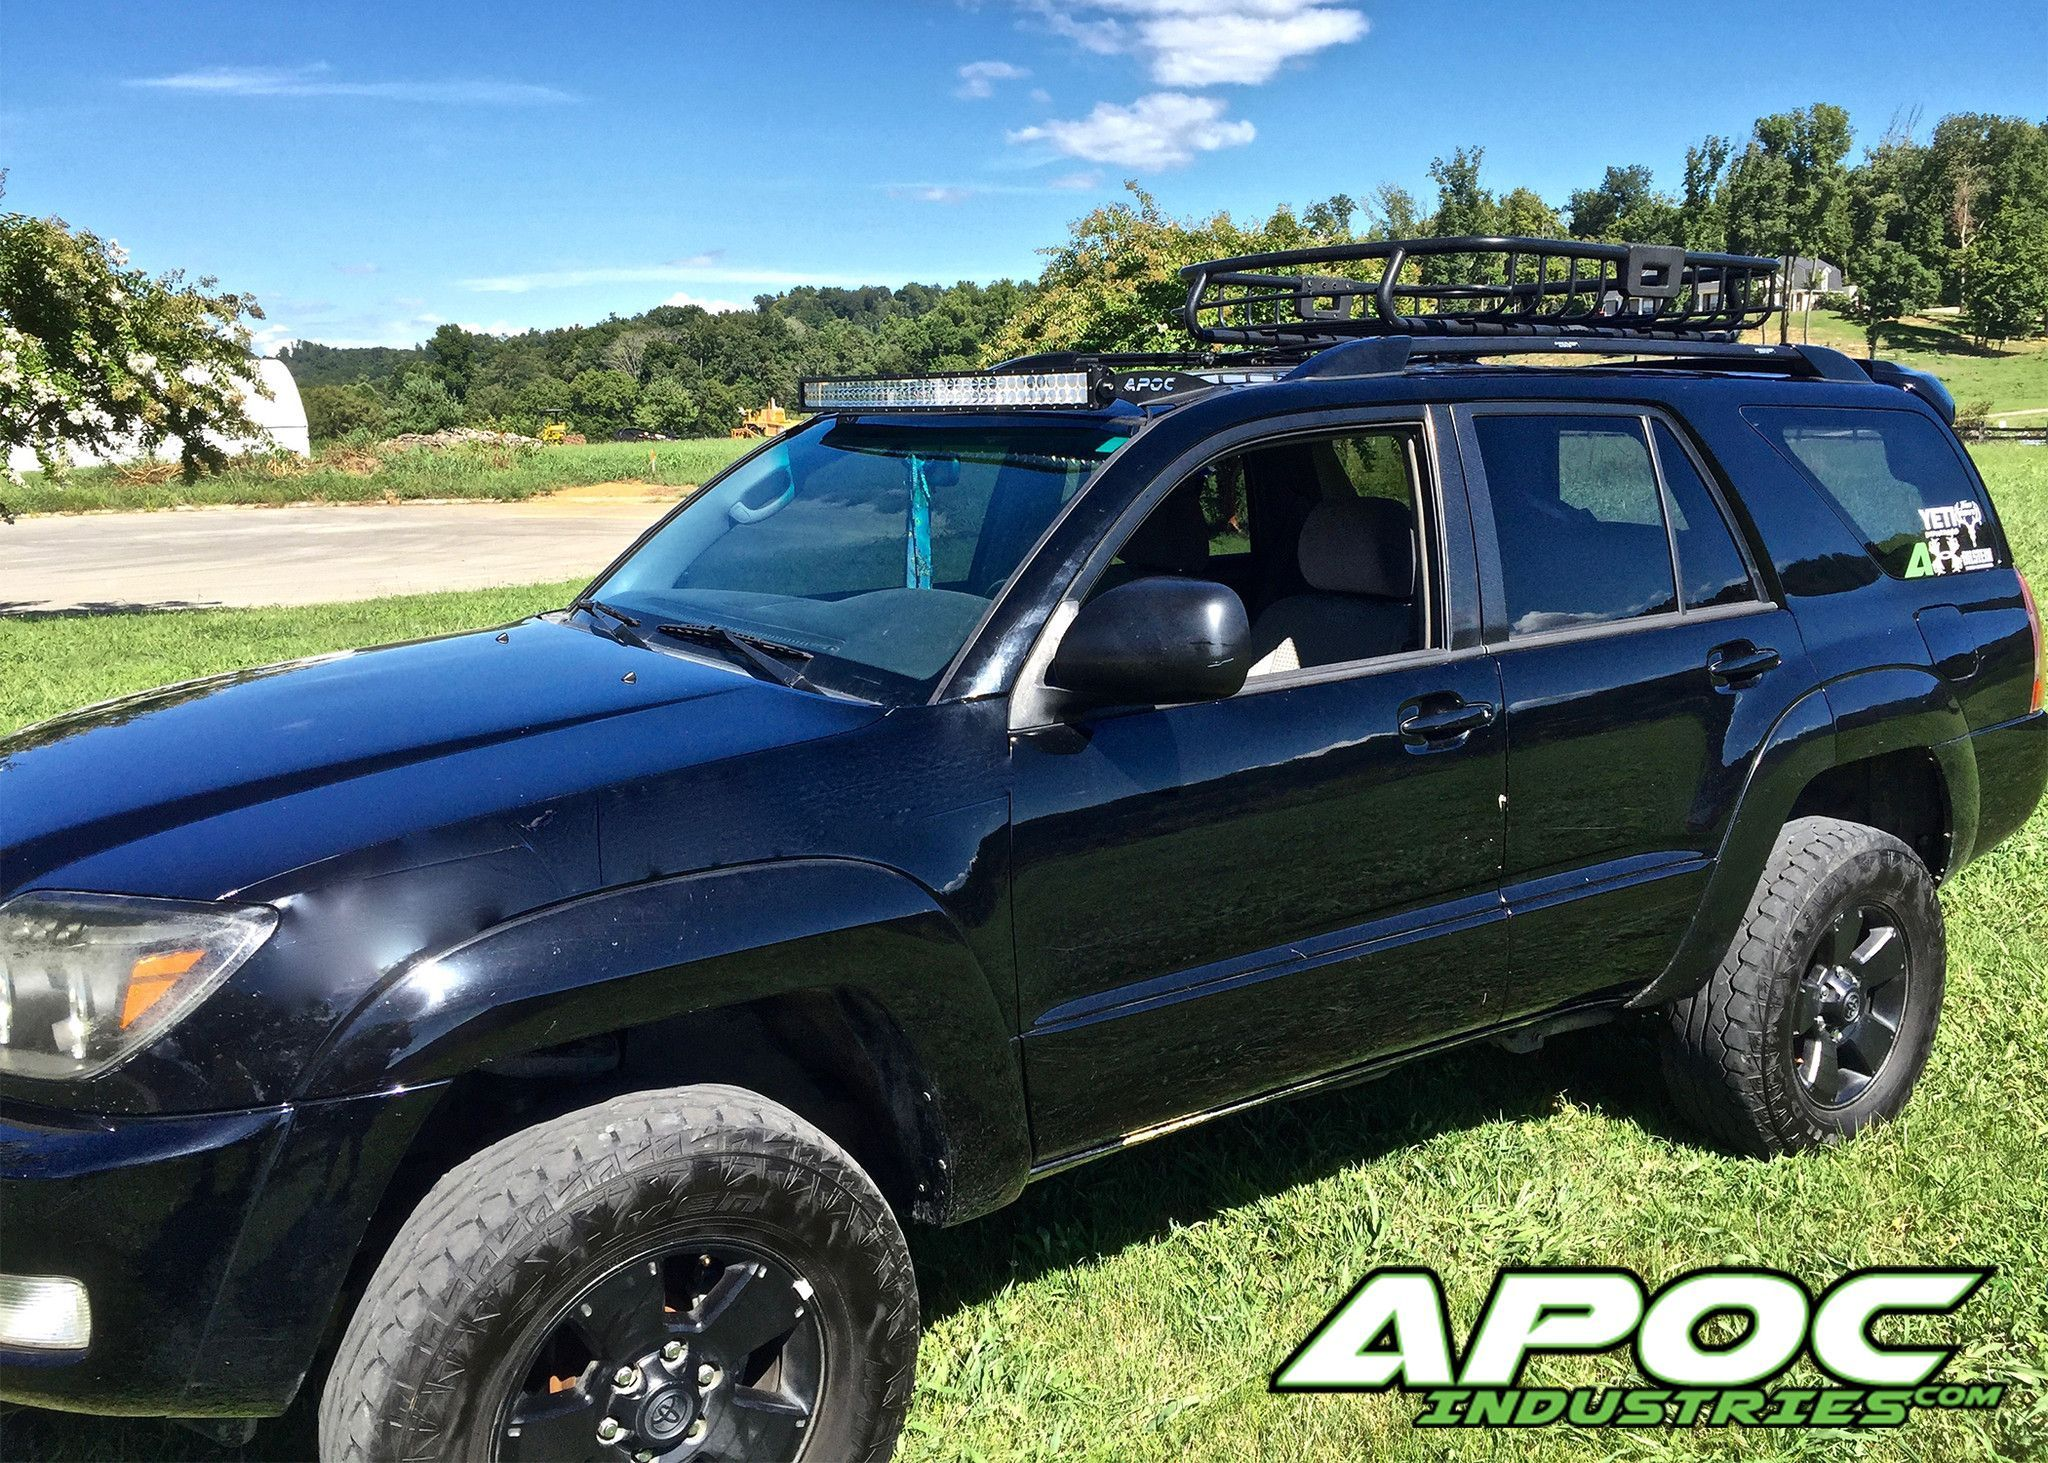 Toyota 4 runner led light bar roof mount for 42 02 09 toyota 4 runner apoc roof mount for 42 curved led light bars mozeypictures Choice Image